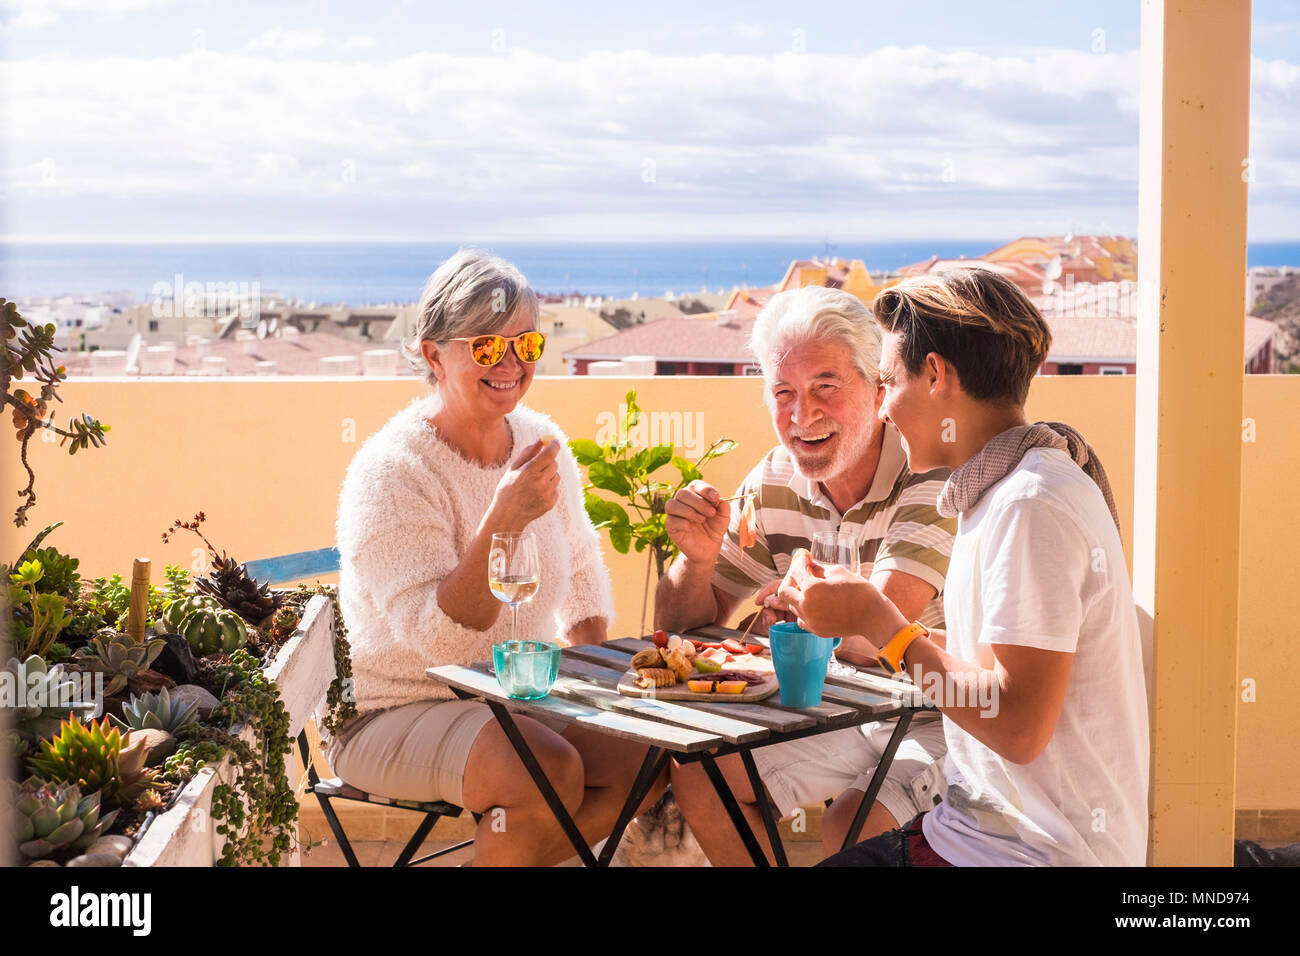 three people different ages eating and enjoying together the rooftop with sea view. Summer lifestyle with amazing panorama. Eat and drink food and bev - Stock Image